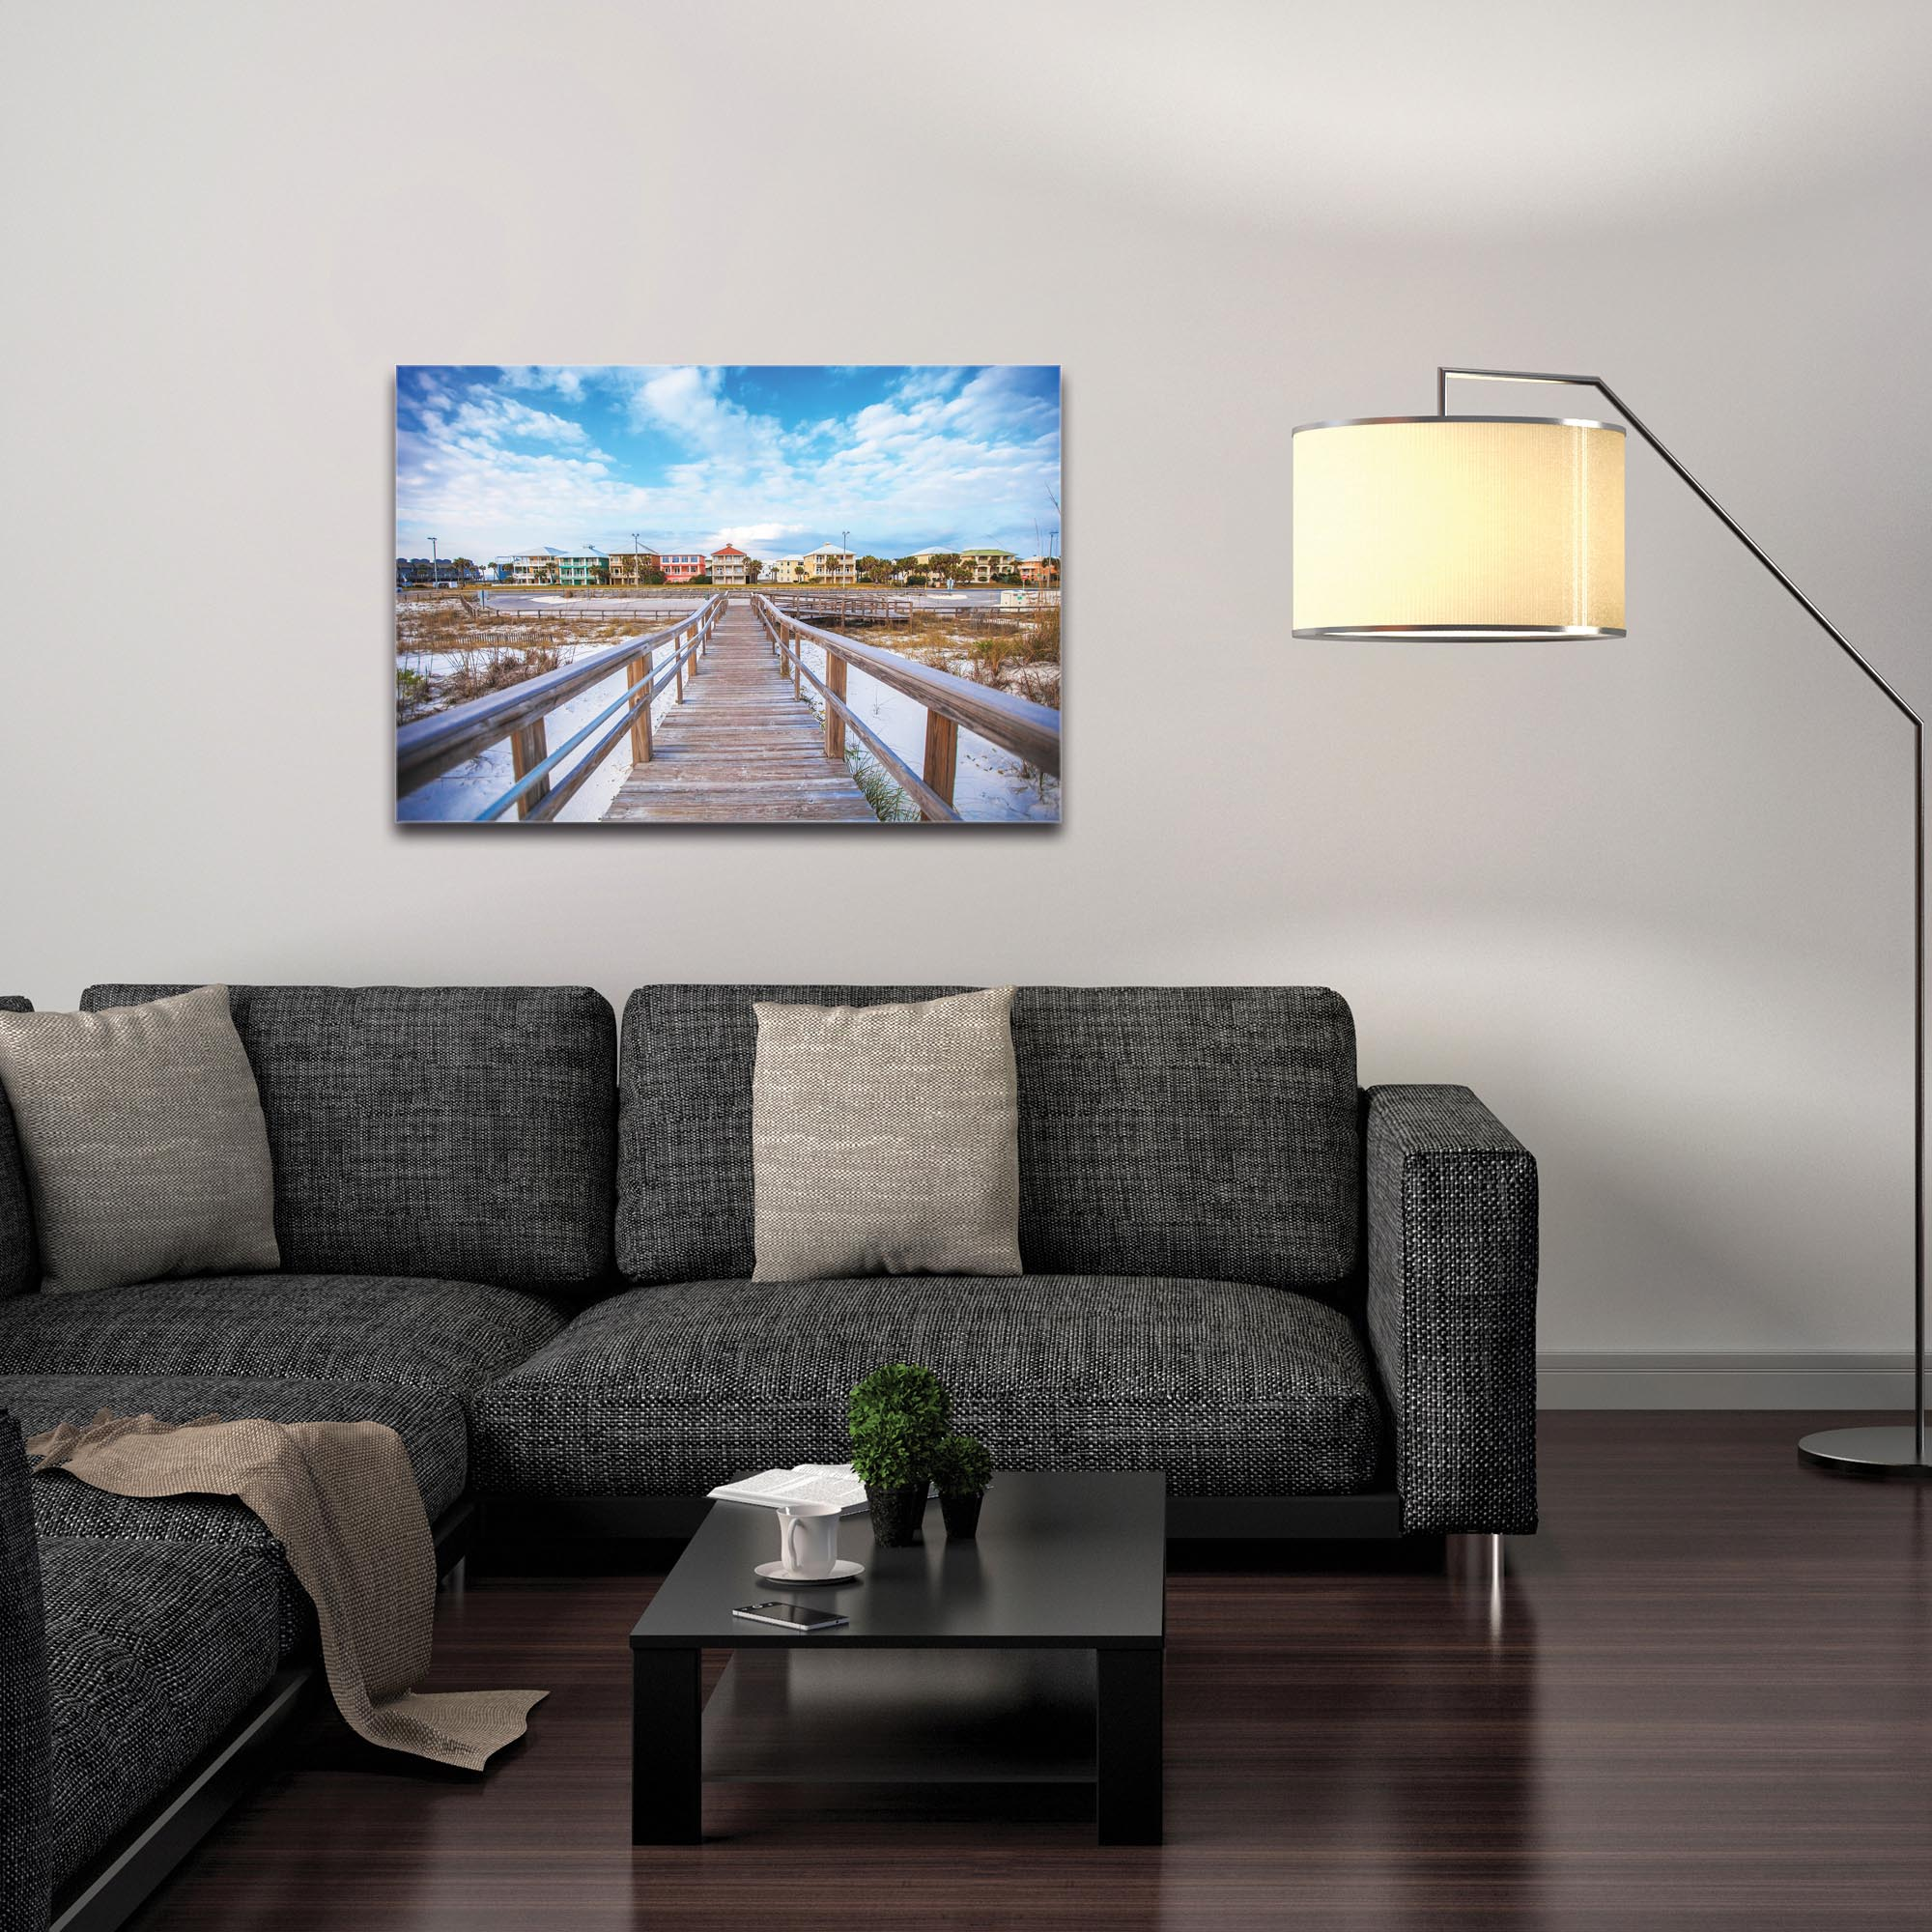 Coastal Wall Art 'Gulf Path' - Bridges Decor on Metal or Plexiglass - Image 3